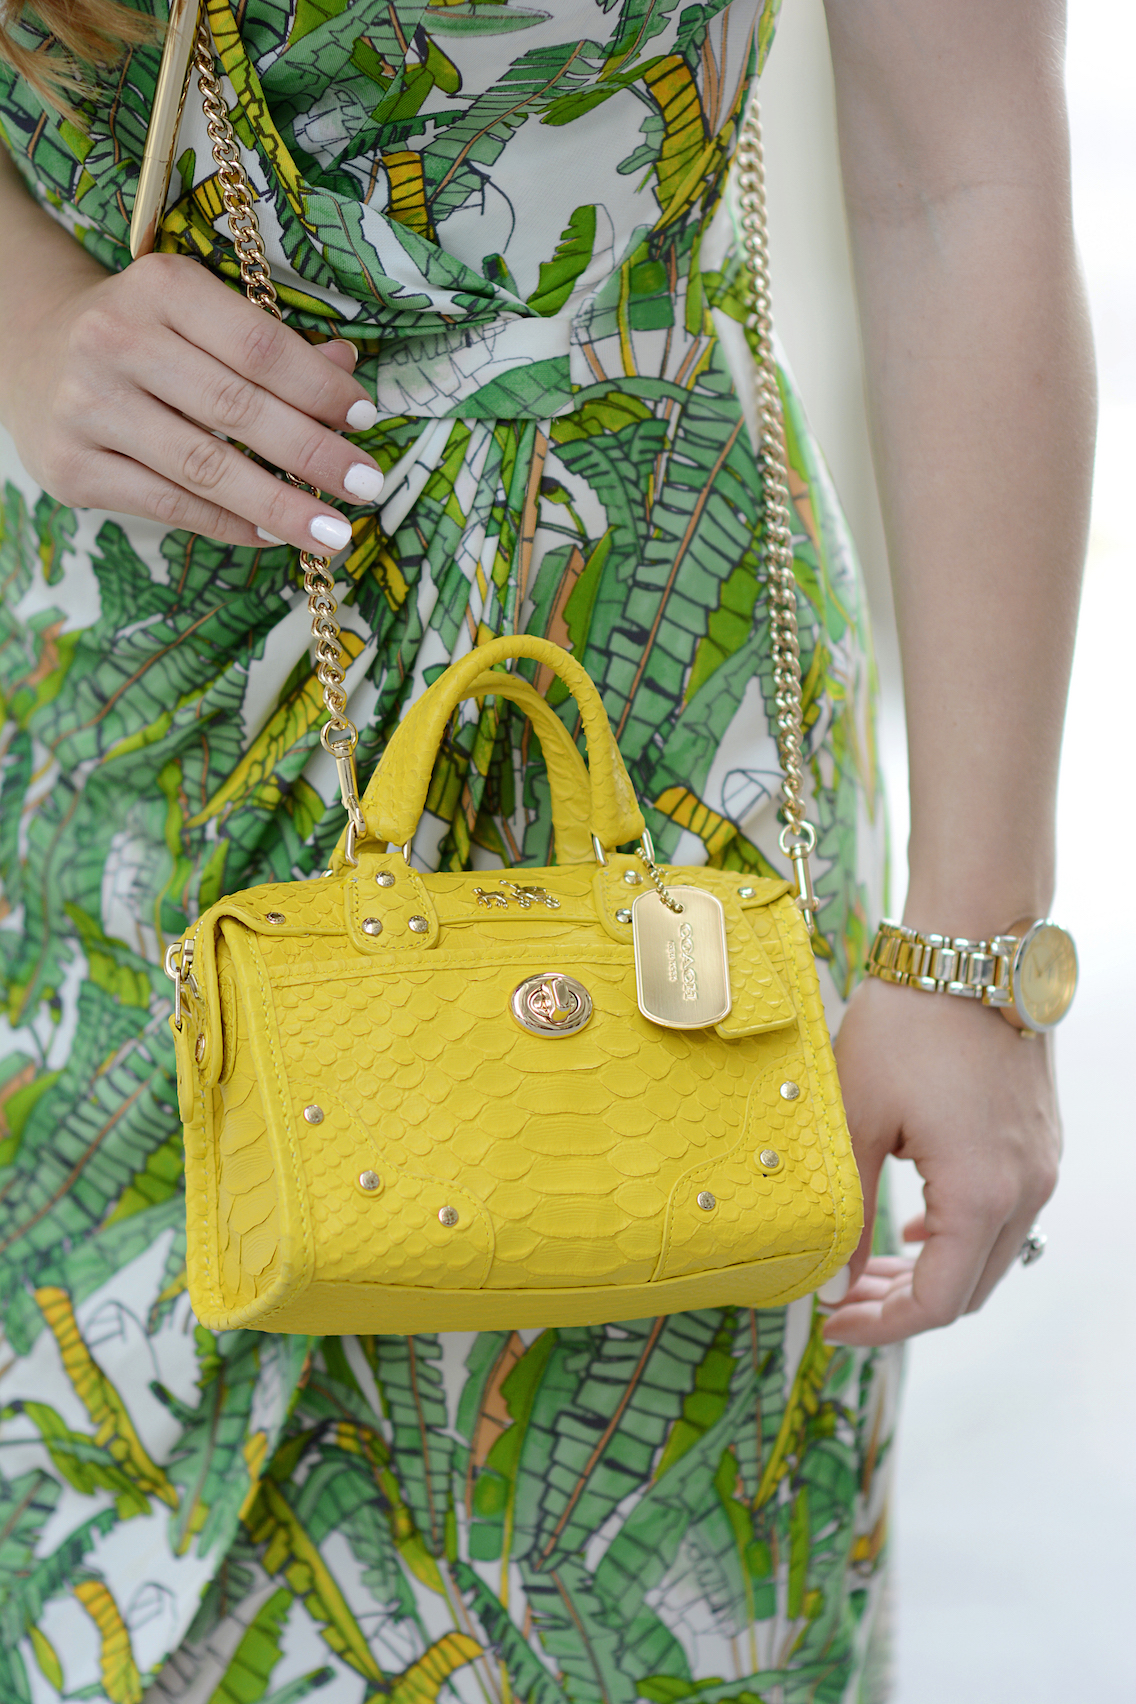 Coach Rhyder 18 crossbody bag in python embossed yellow leather